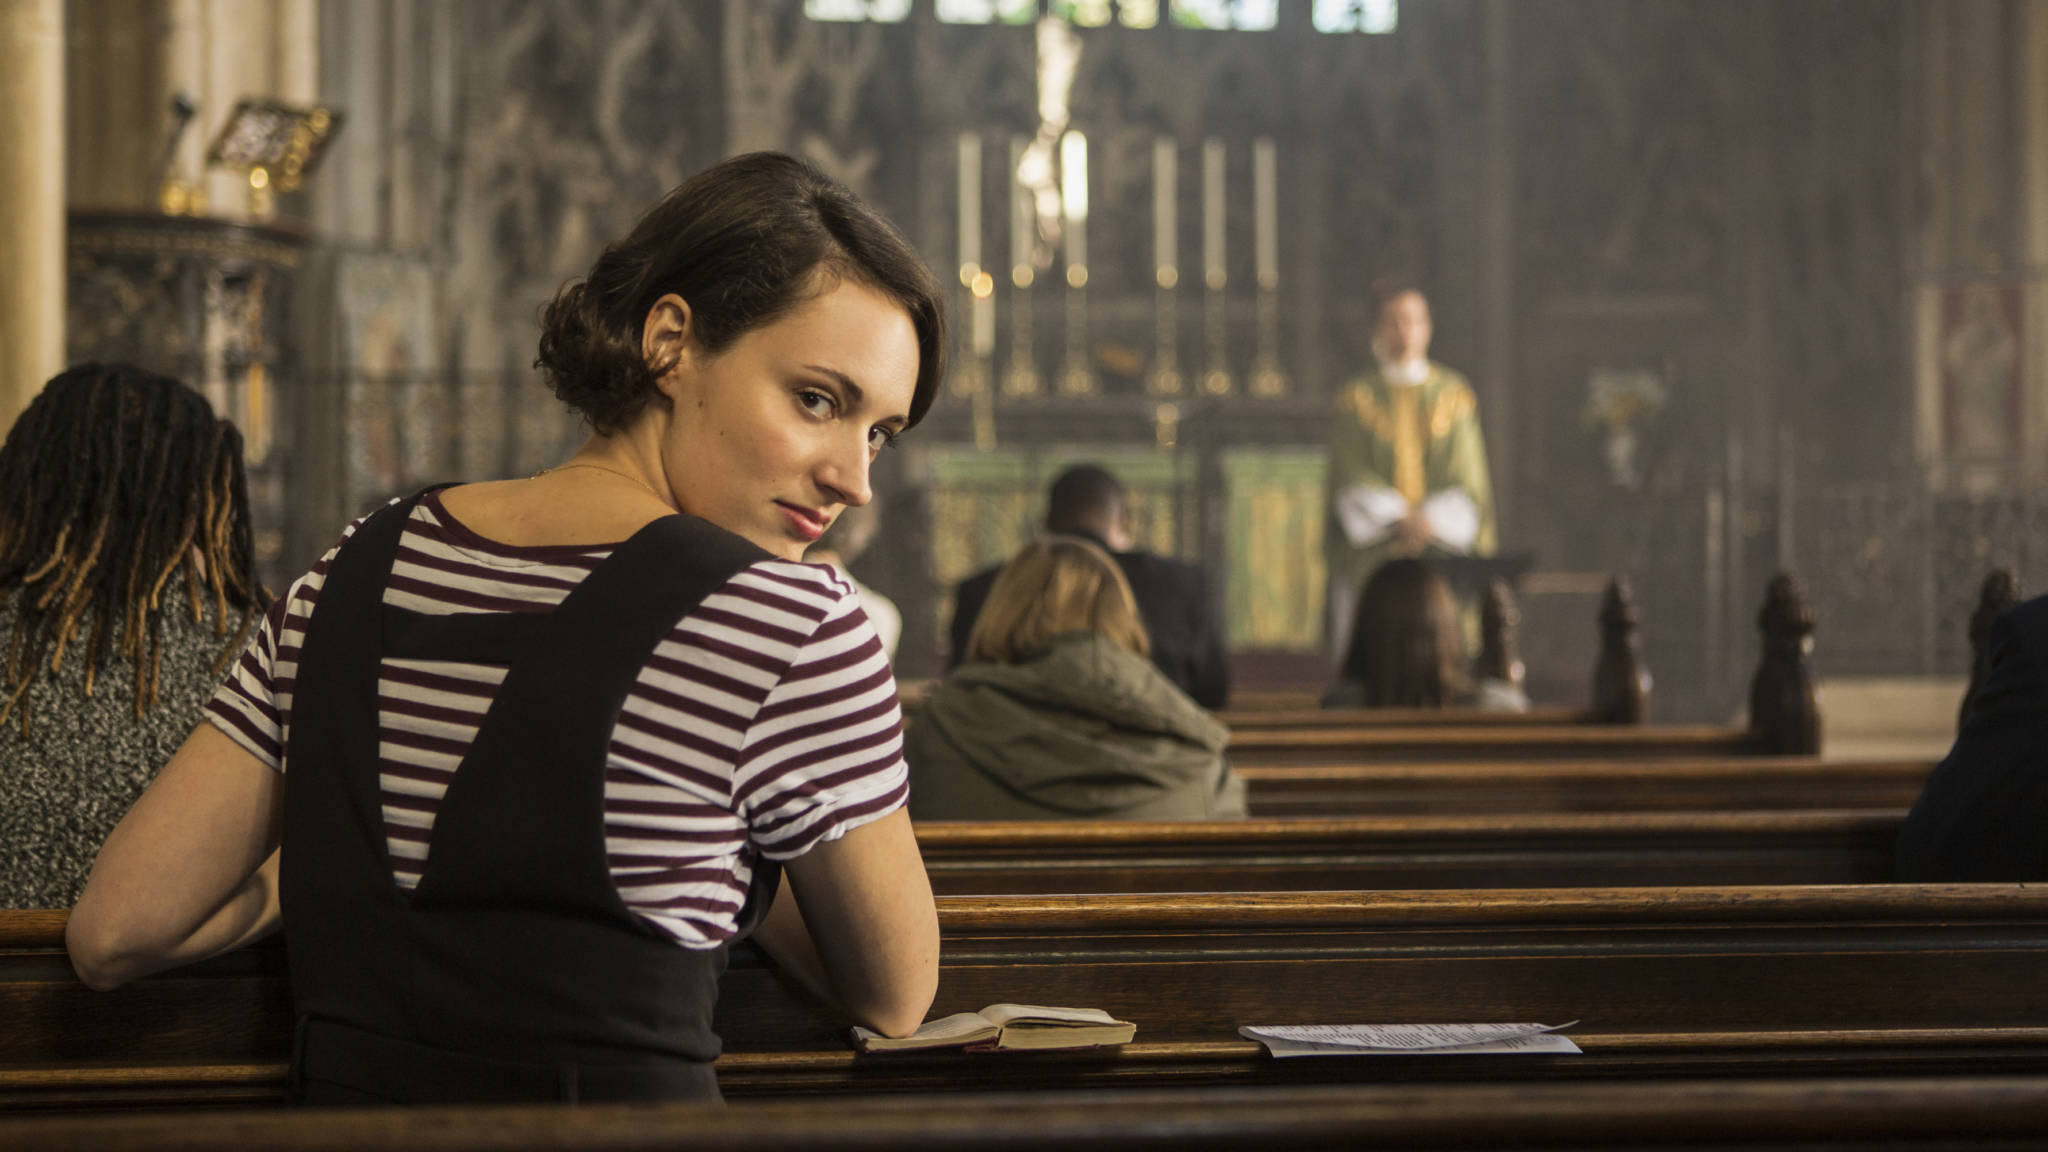 Fleabag Season 2: Release Date, Cast, Trailer And Much More!